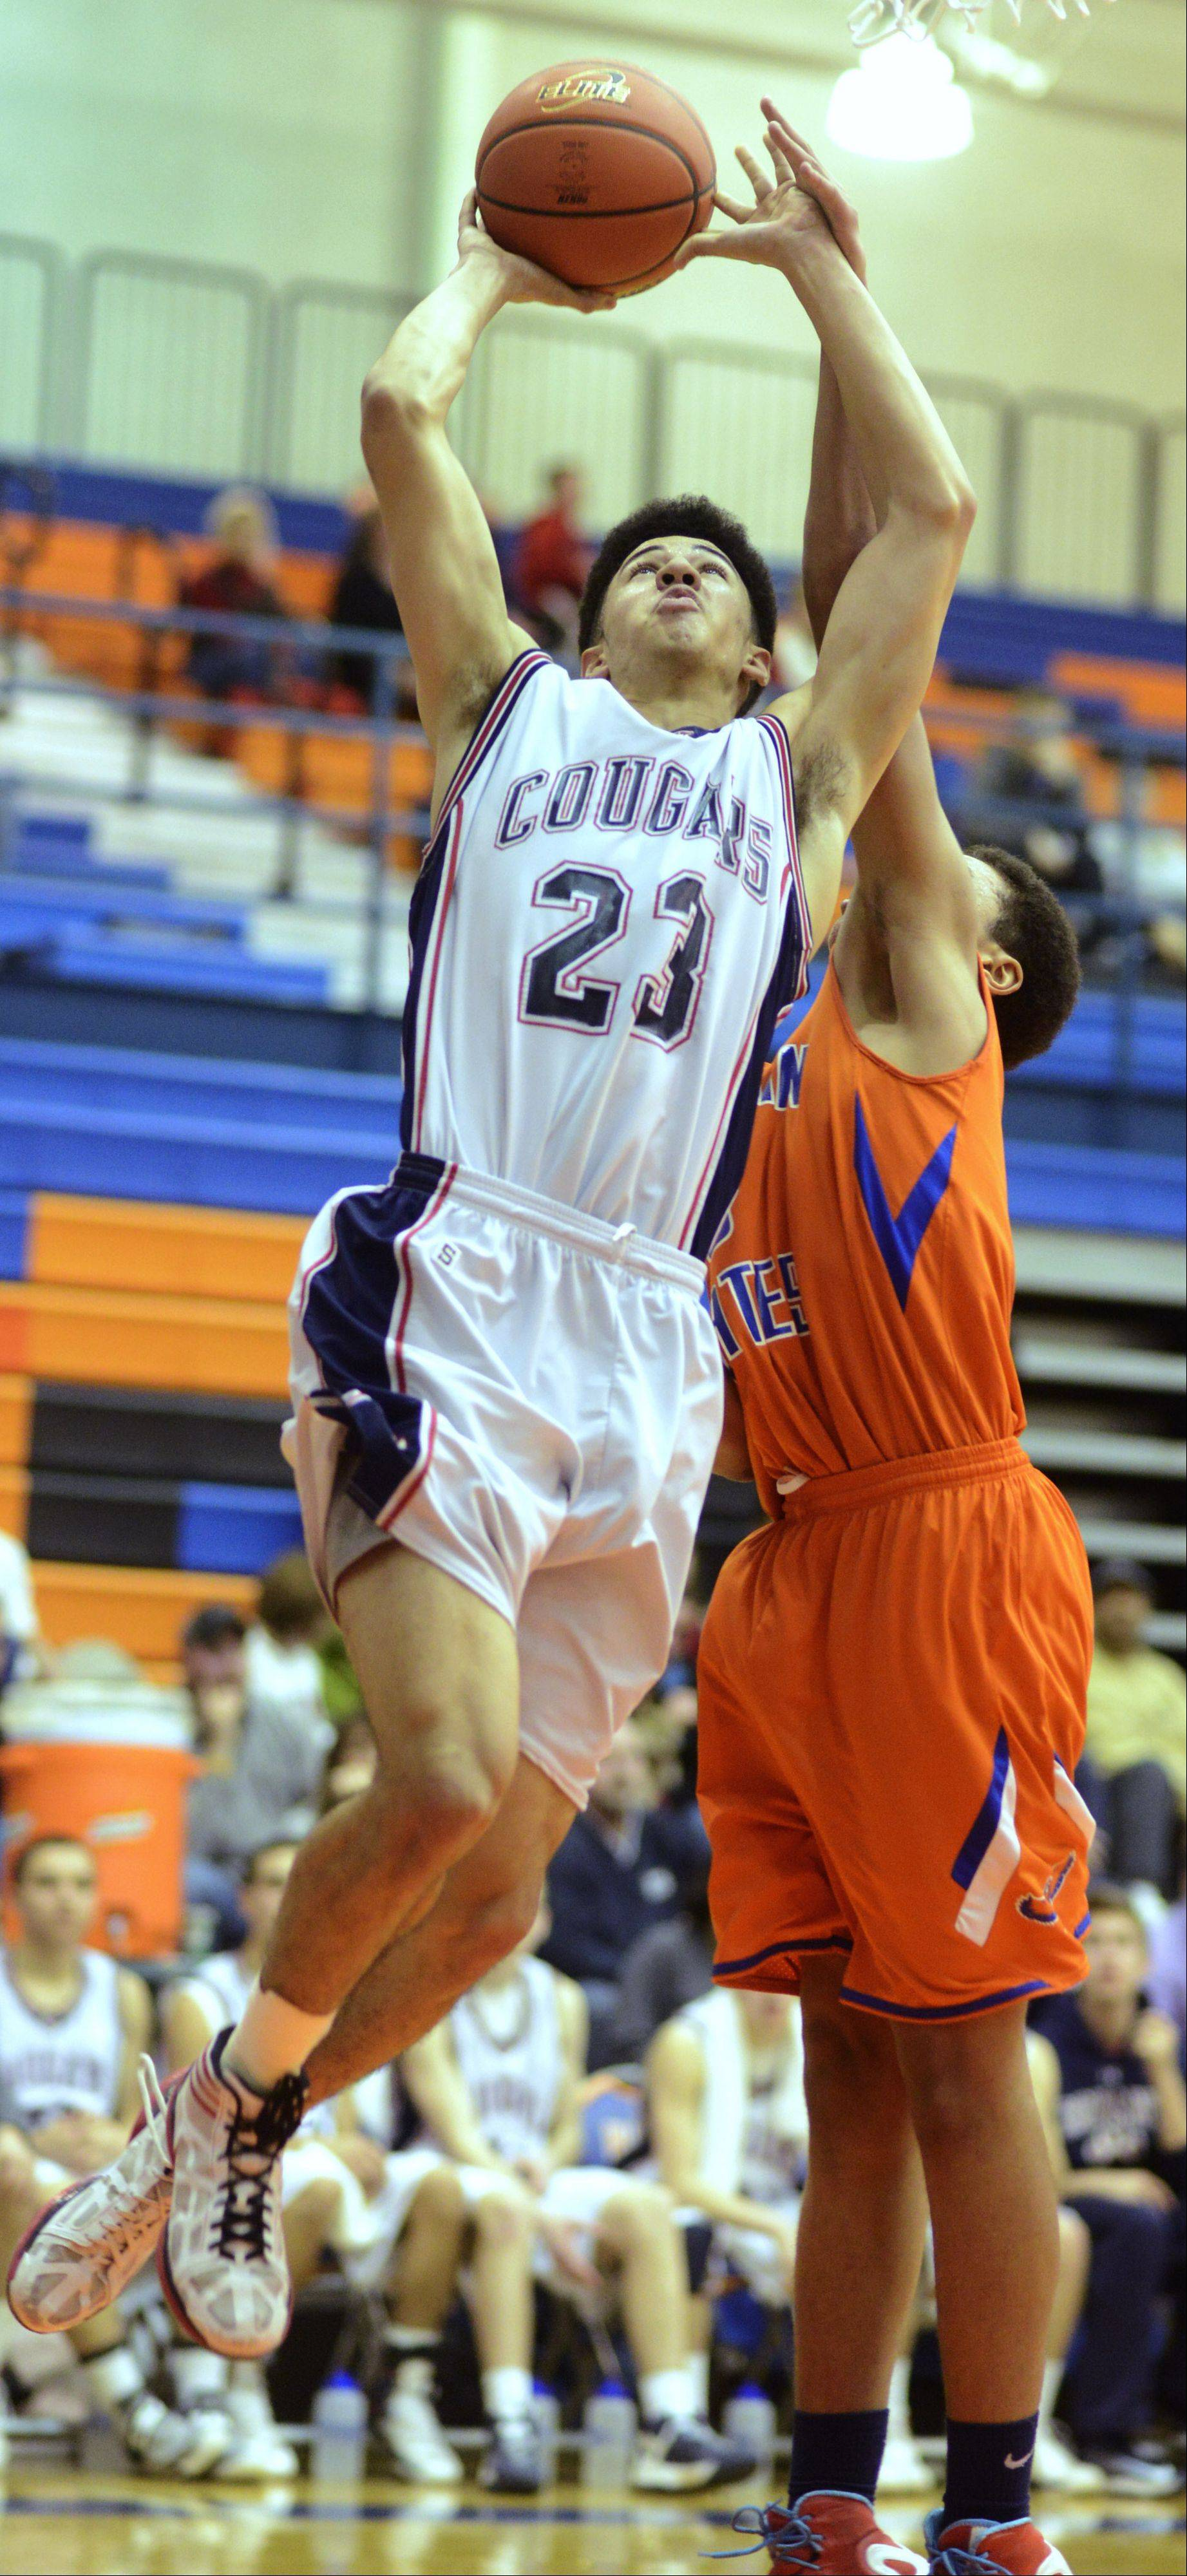 Hard work and perseverance served Conant�s Robert Hudson well in his drive to play basketball collegiately.